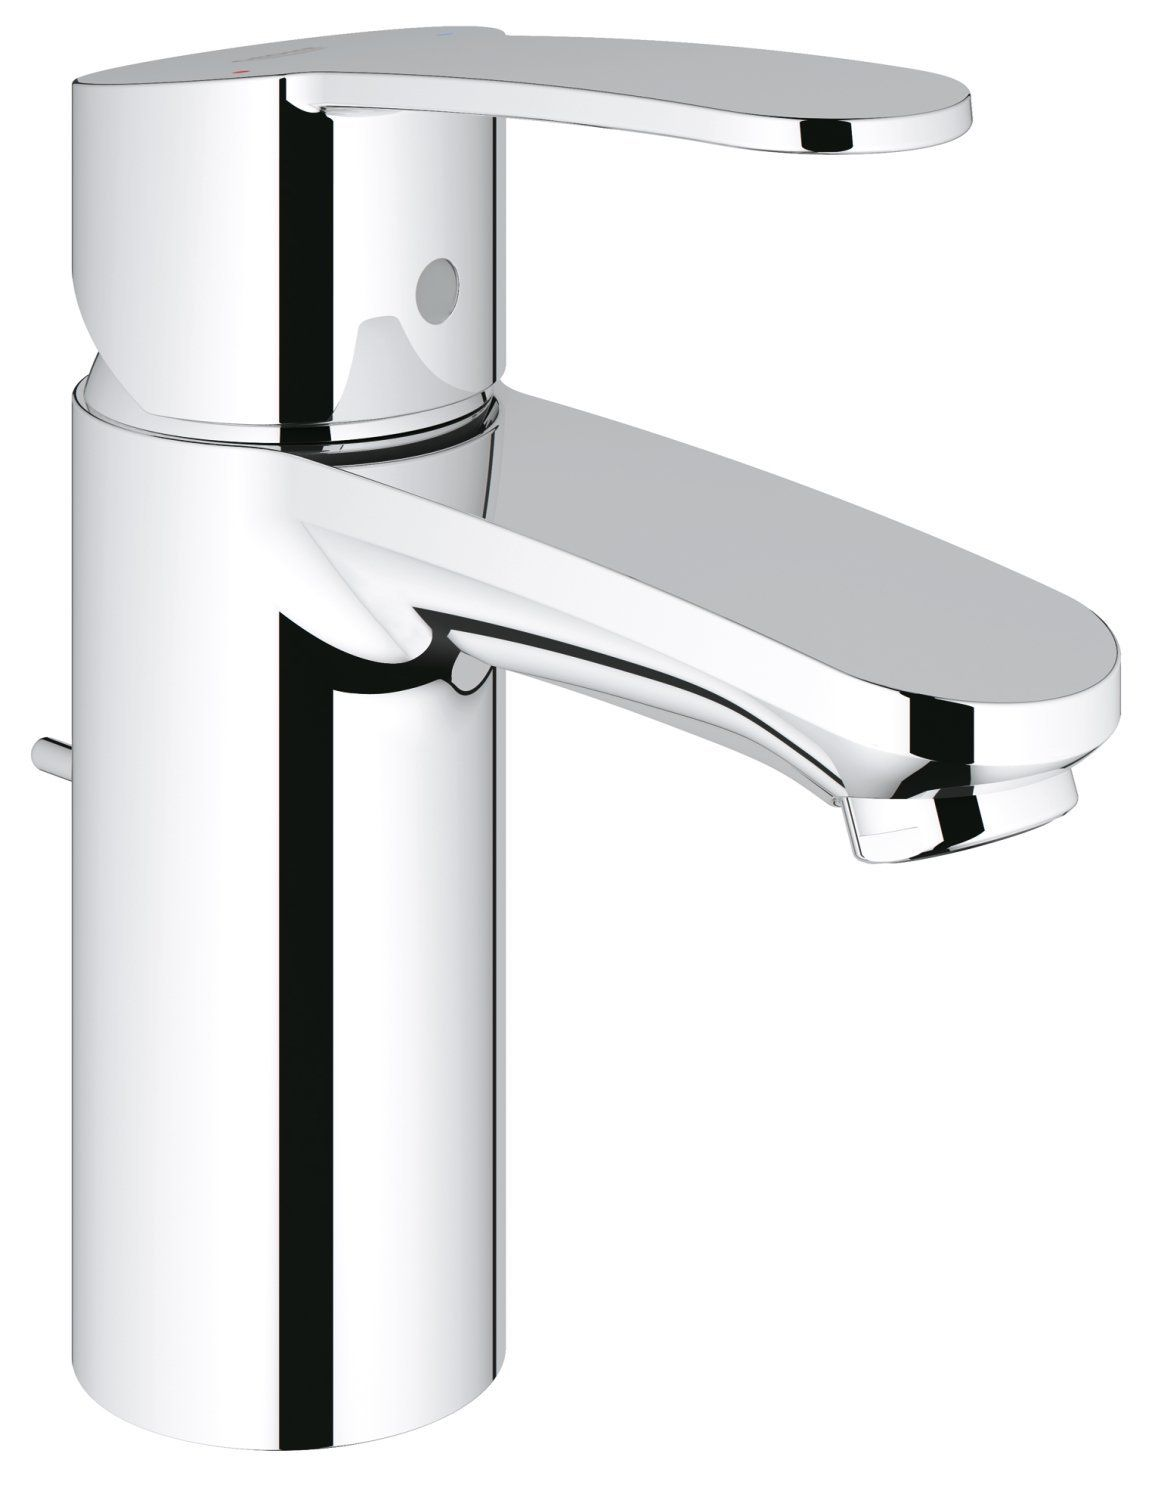 Grohe Robinet De Lavabo Eurostyle Cosmopolitan Corps Lisse Bec